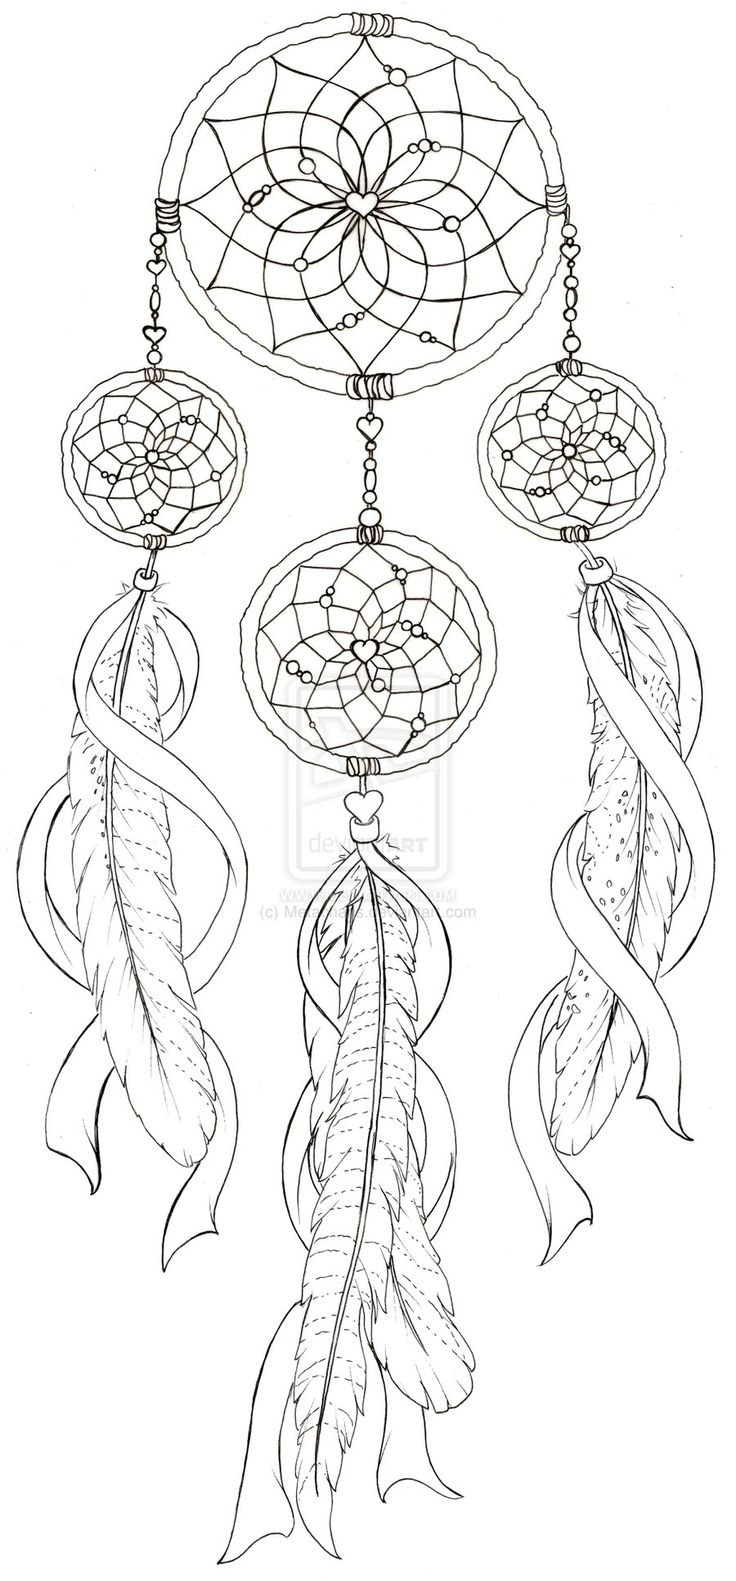 Dreamcatcher coloring #11, Download drawings